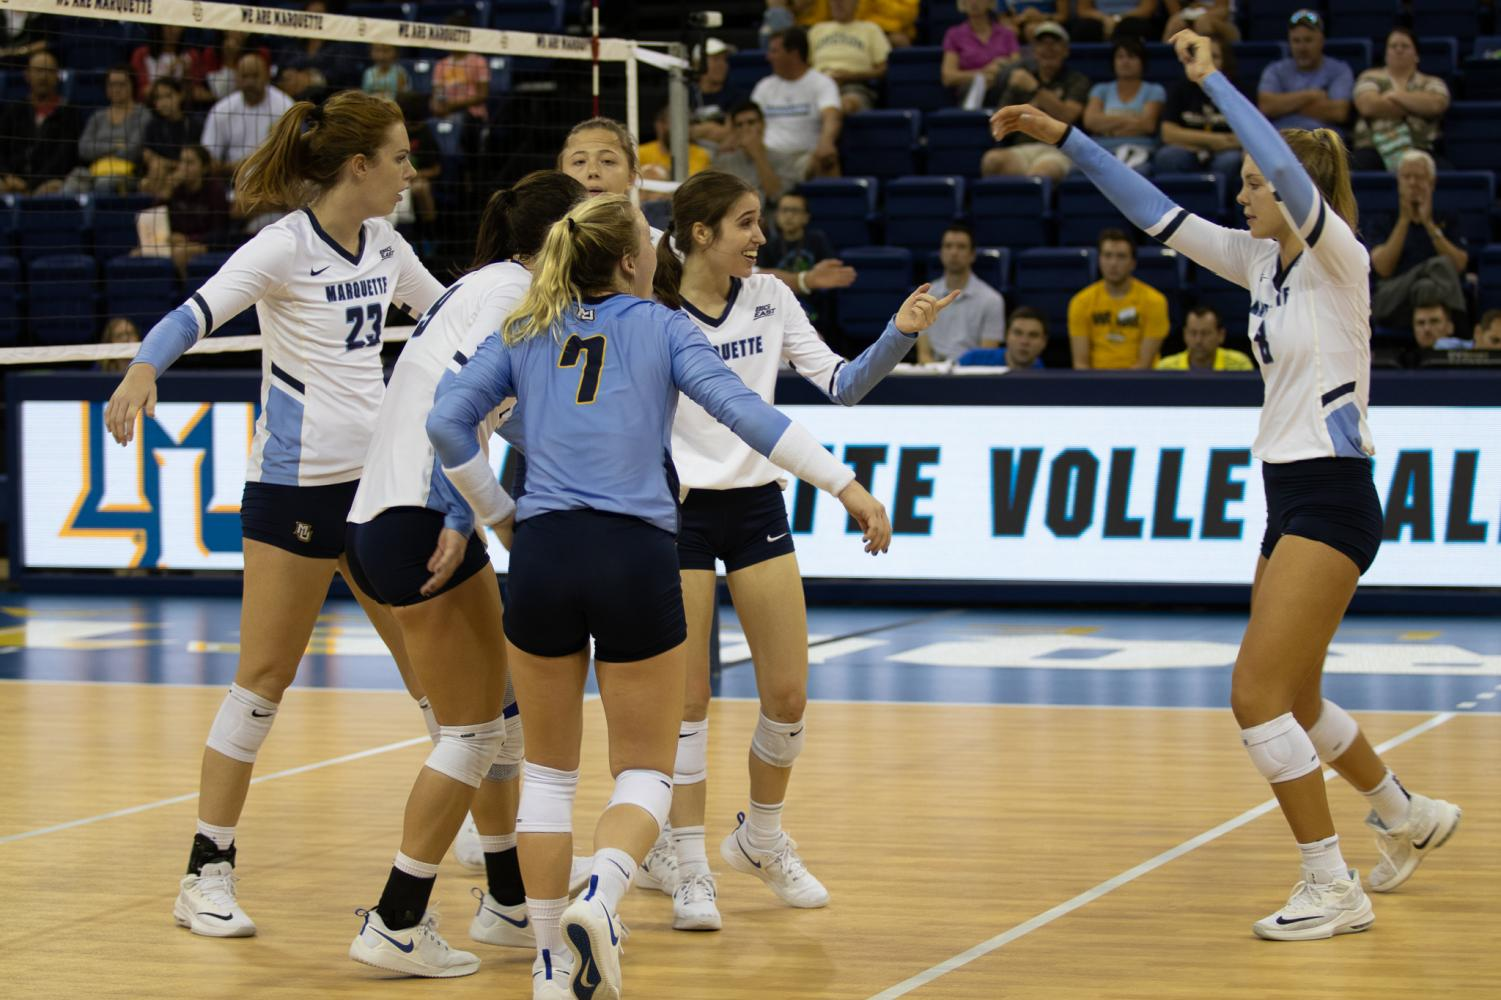 Marquette celebrates a point in its win against Syracuse Sept. 7 at the Al McGuire Center.